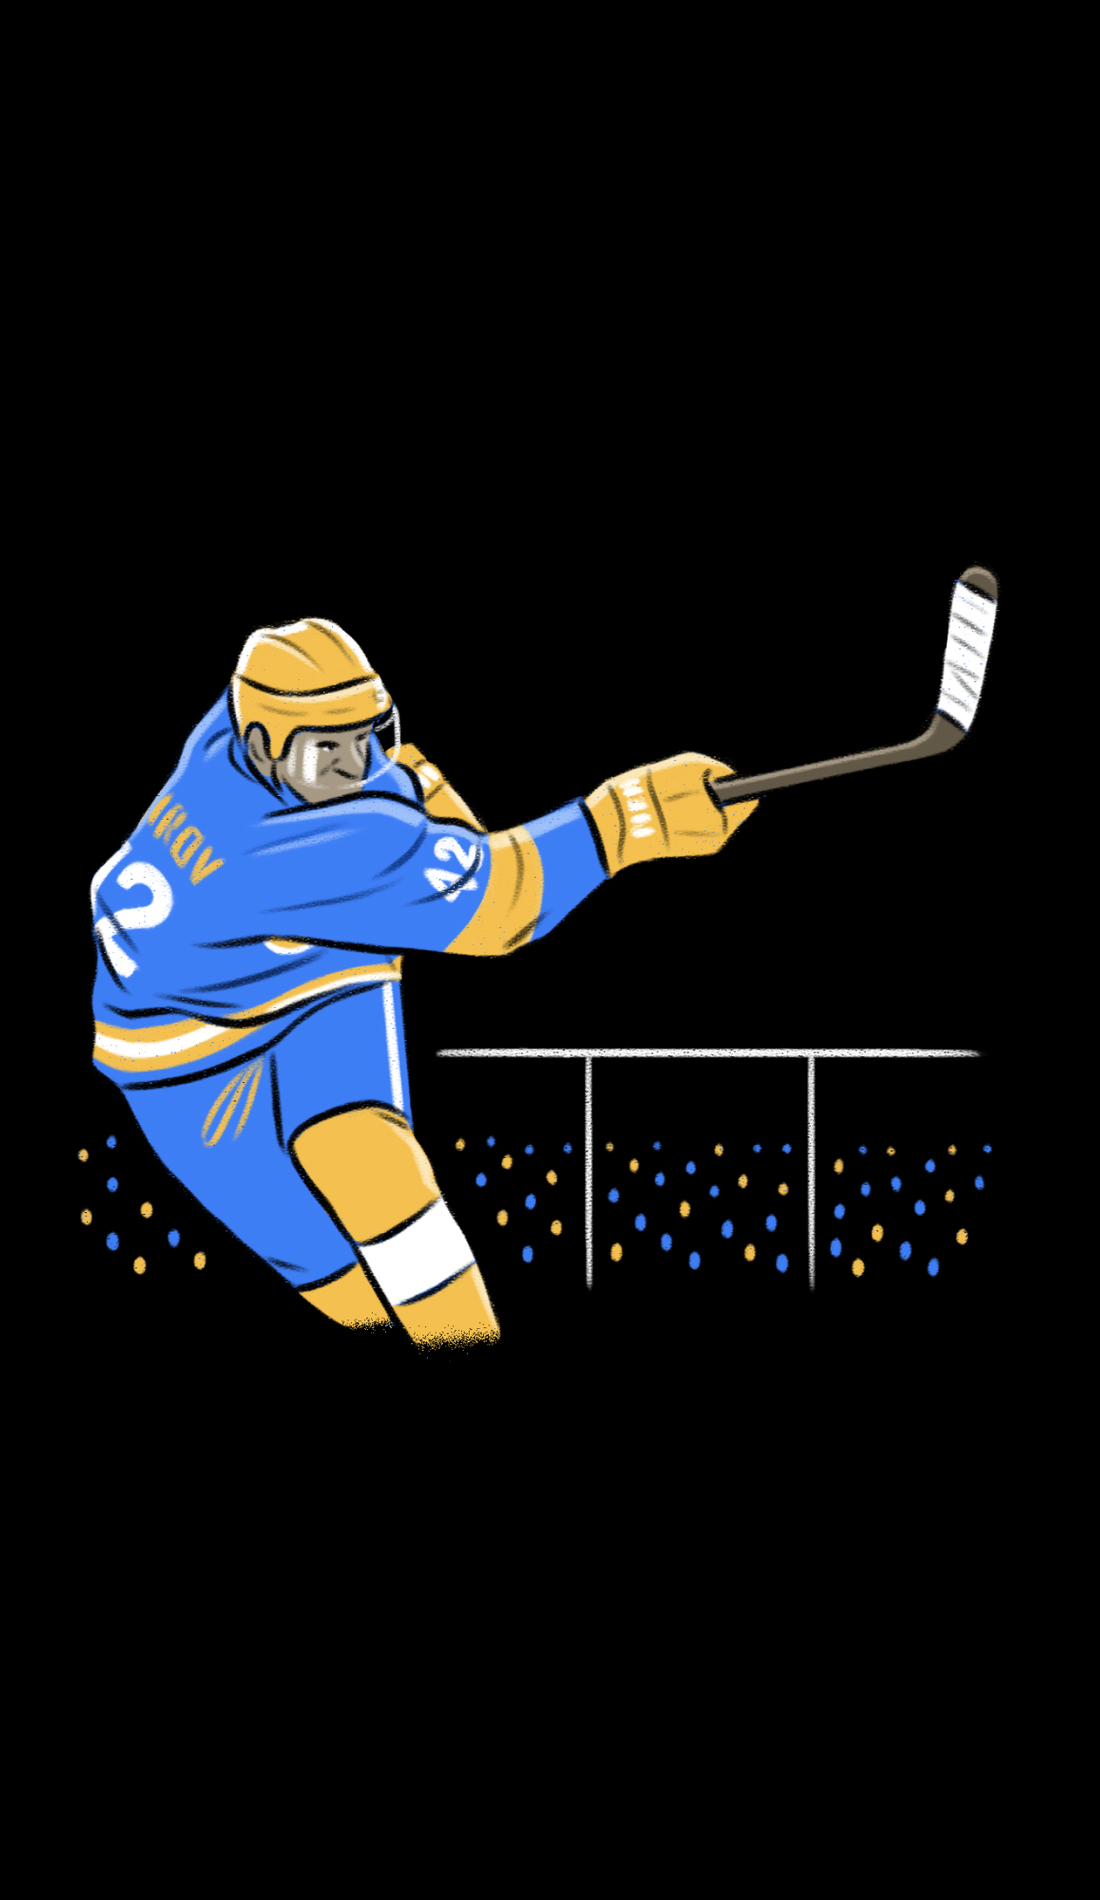 A Michigan Wolverines Hockey live event